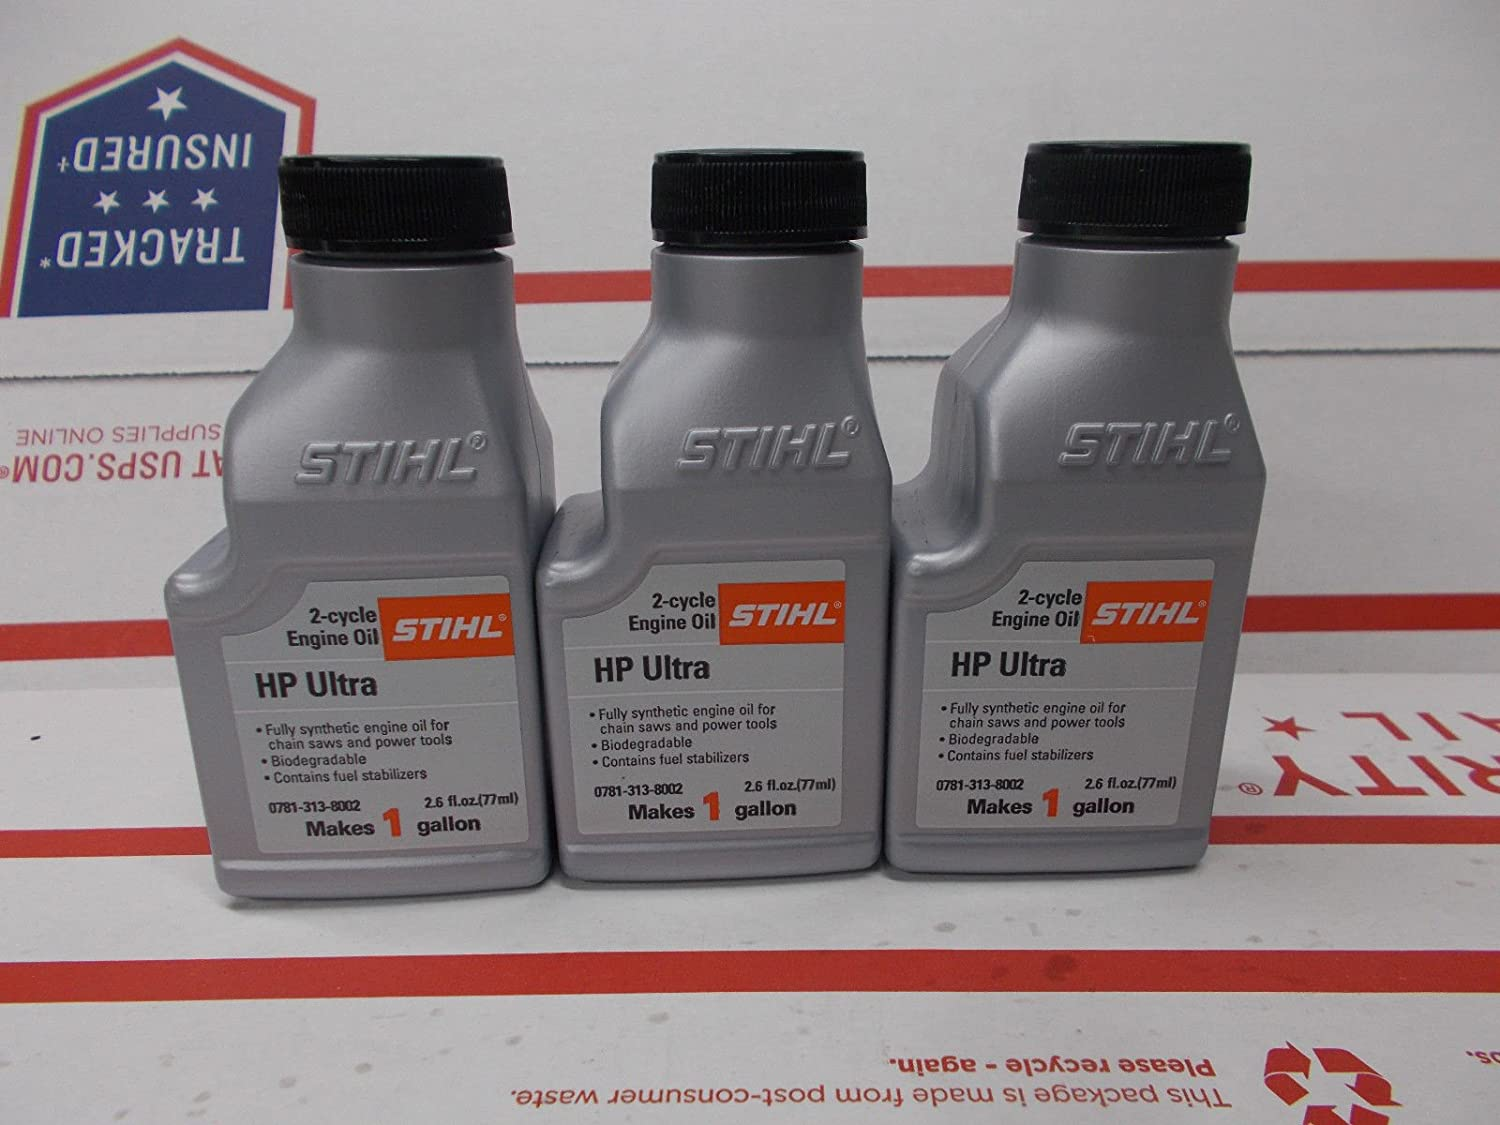 Stihl 3 Pack Synthetic Oil Mix 50:1 HP Ultra 2-Cycle 1 Bottle 2.6 oz = 1 Gal #G